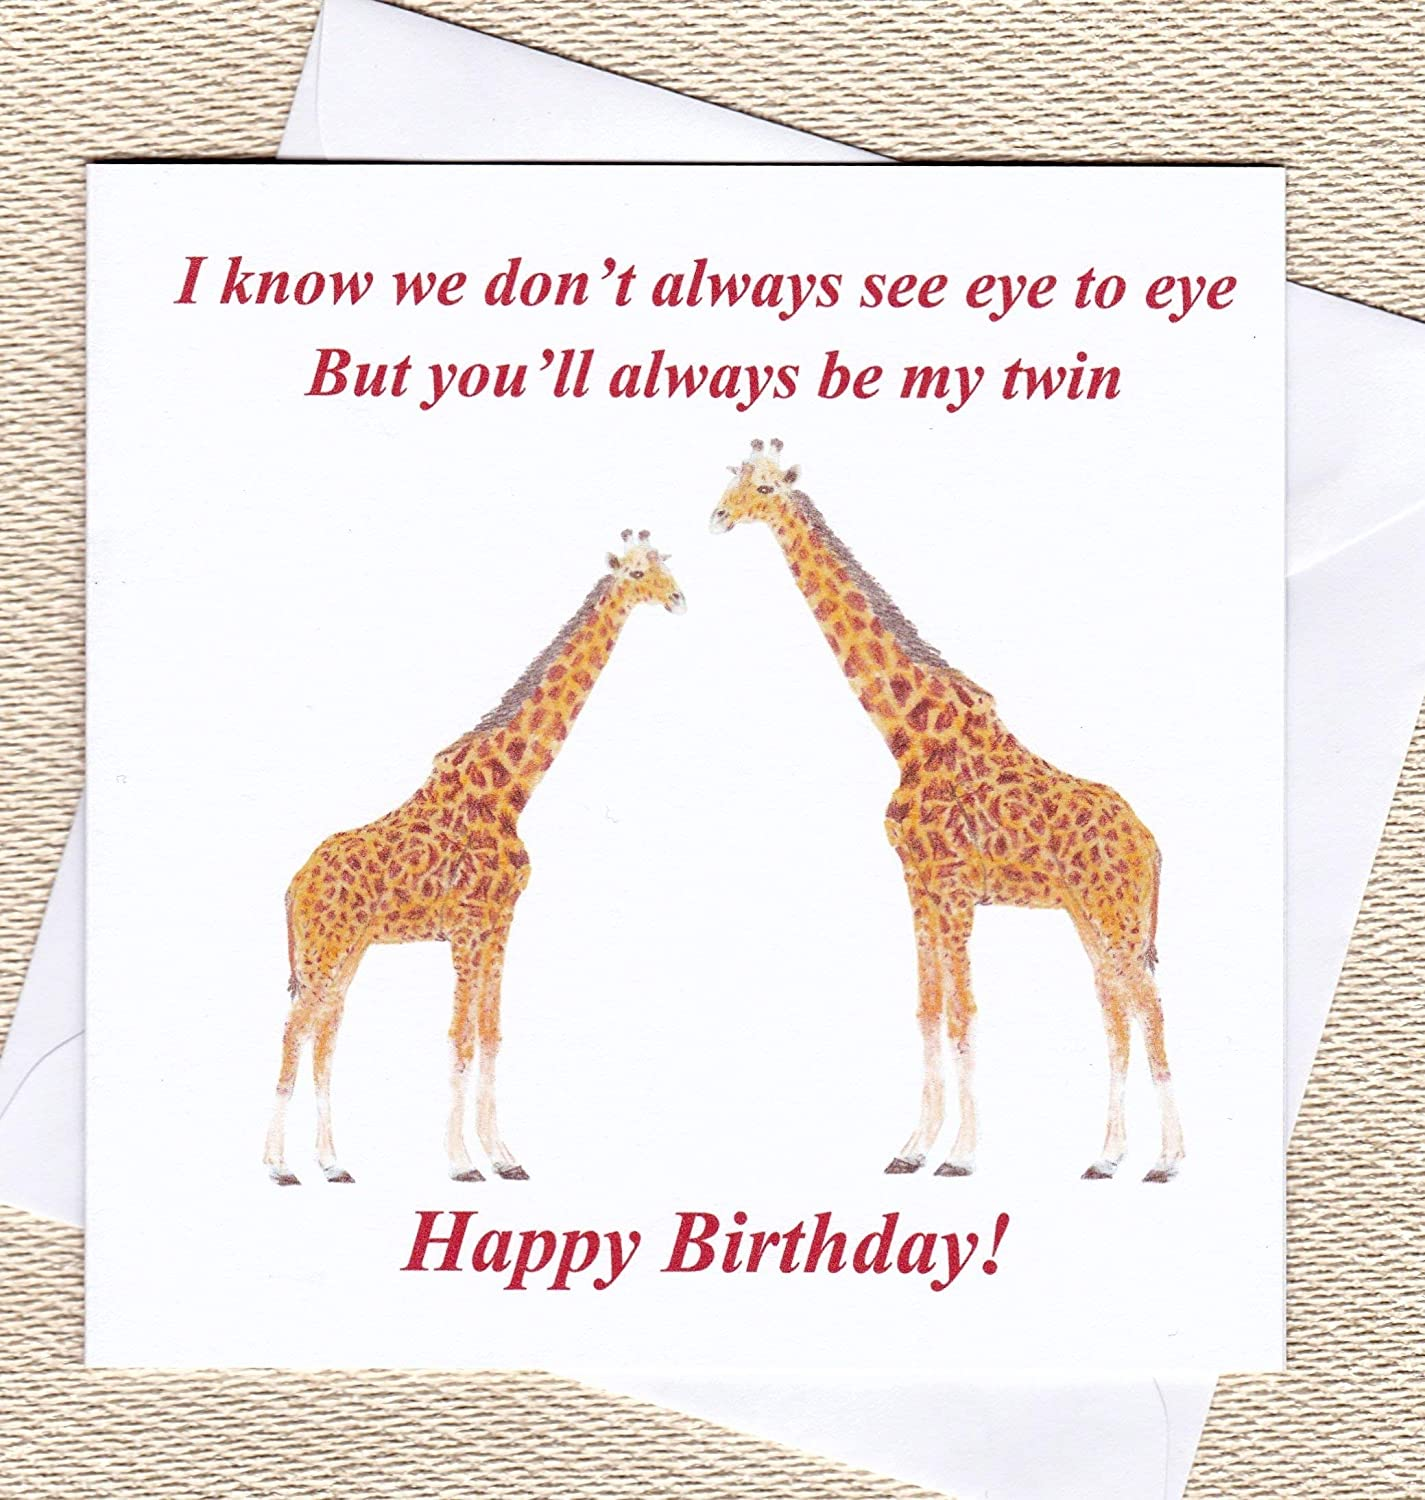 Giraffe Birthday Card for a Twin from a Twin